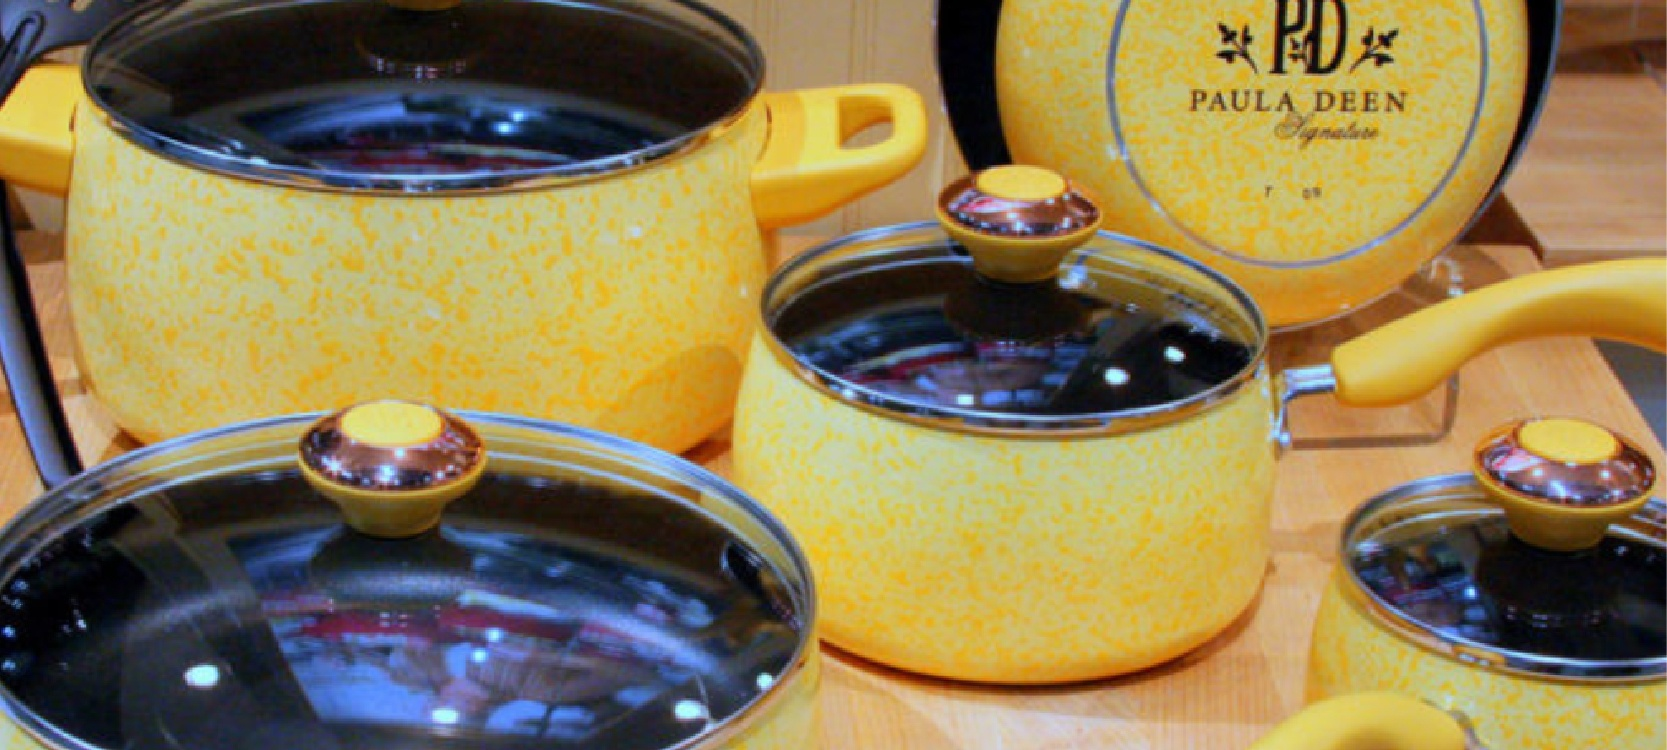 the stunning yellow Paula Deen kitchenware